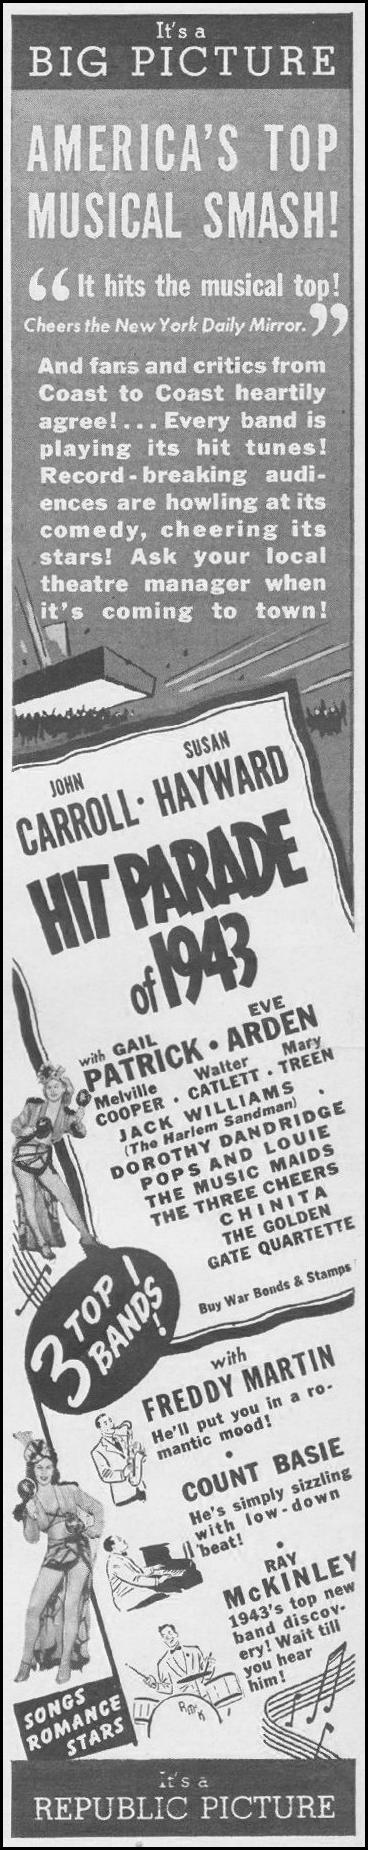 HIT PARADE OF 1943 LIFE 06/22/1942 p. 12